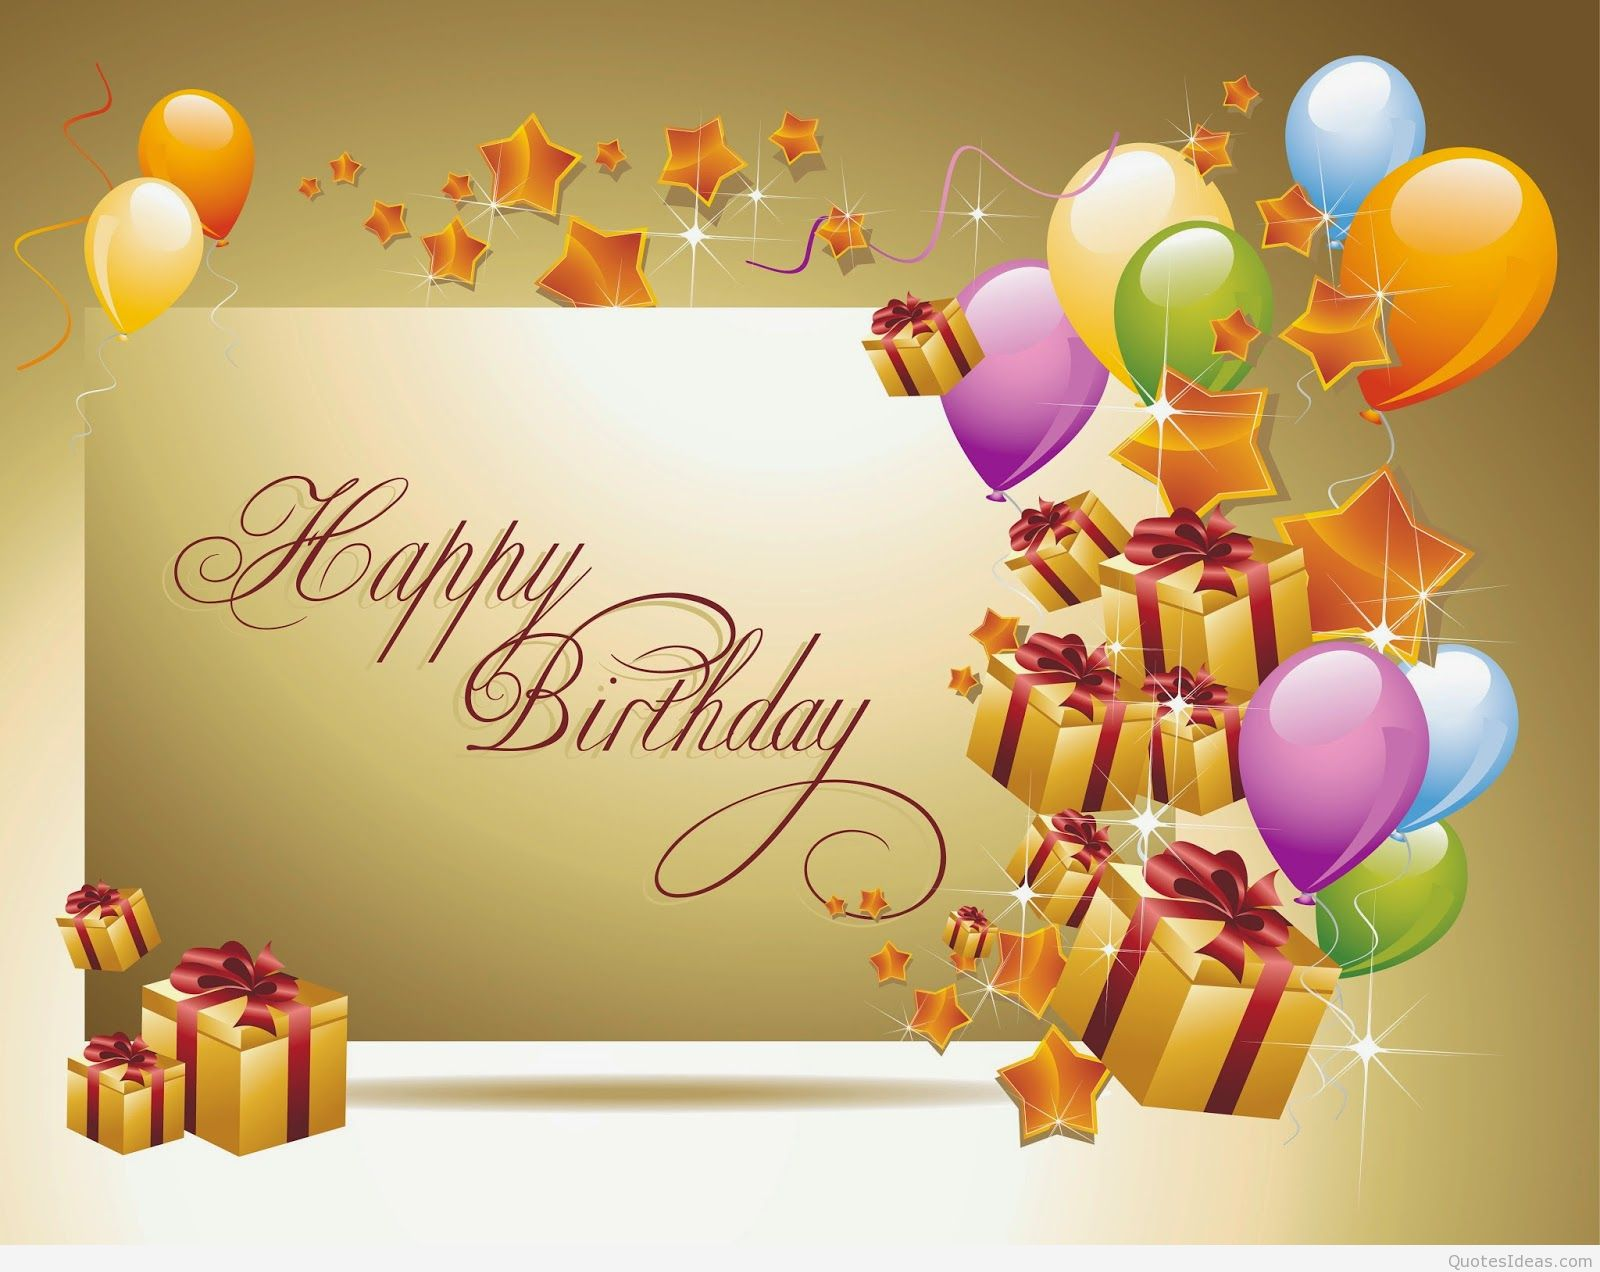 Happy birthday my brothers with wallpapers images hd top 1600x1272